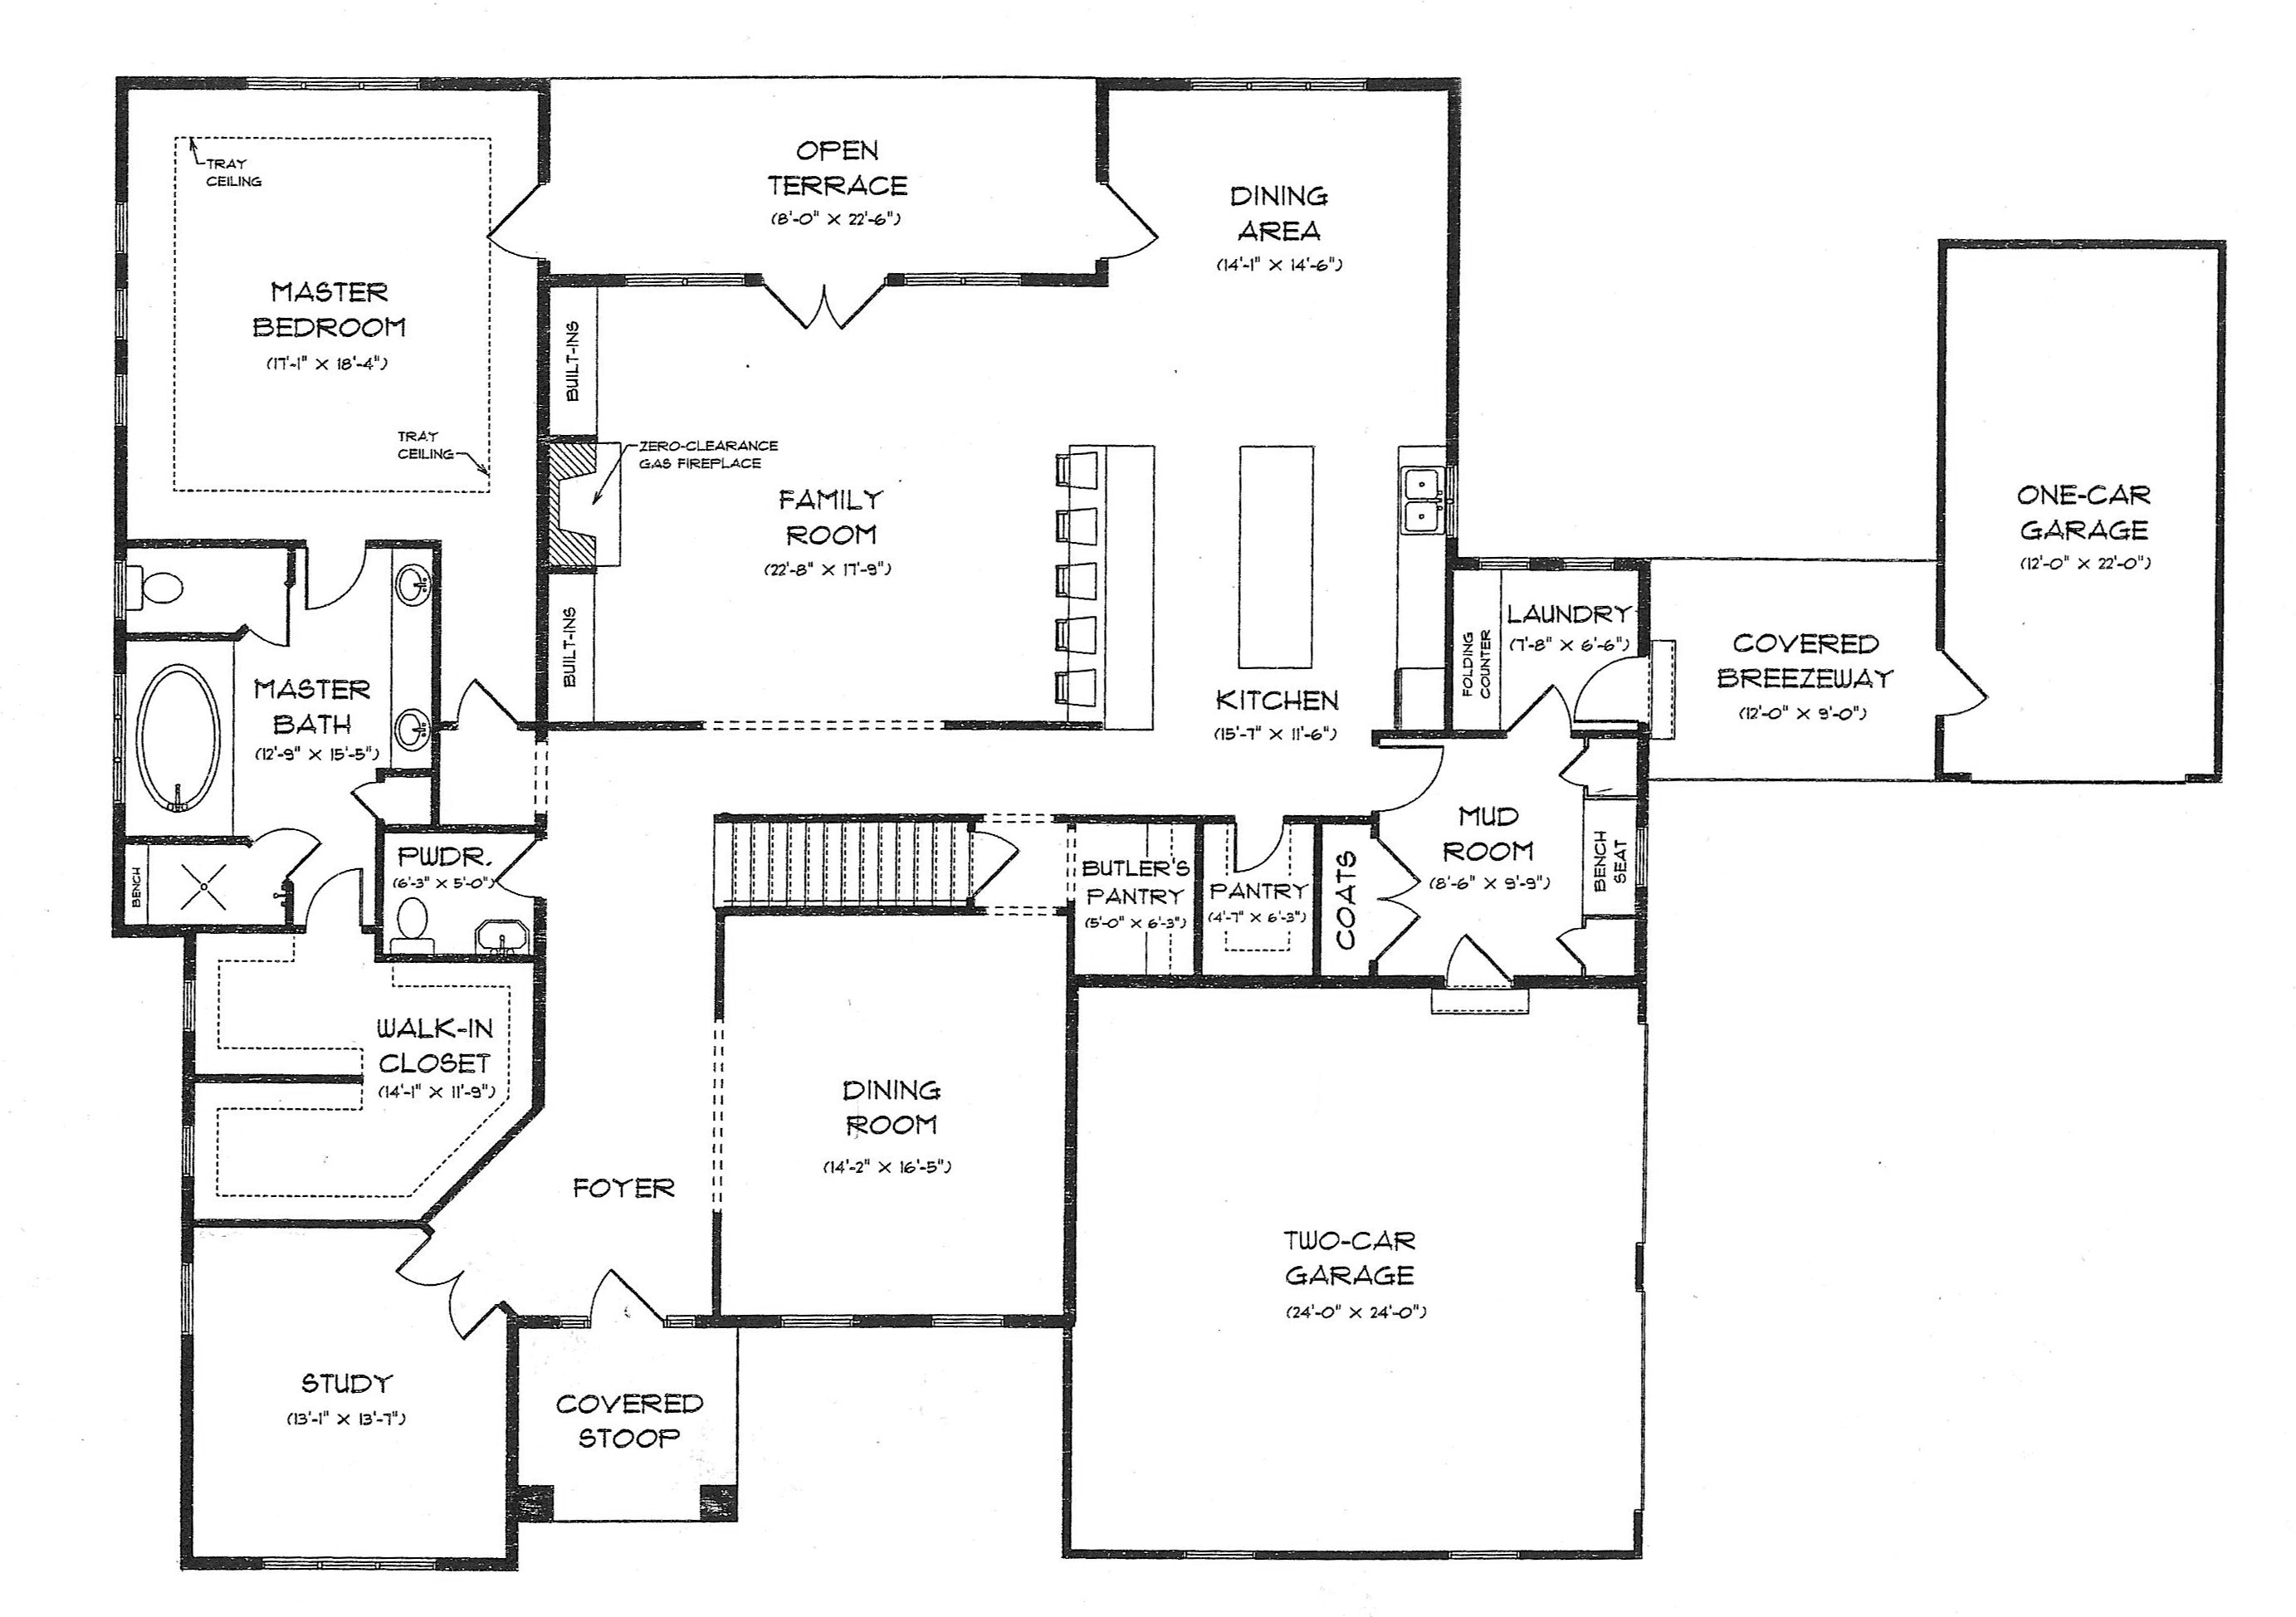 Funeral home design plans house design ideas Home building plans